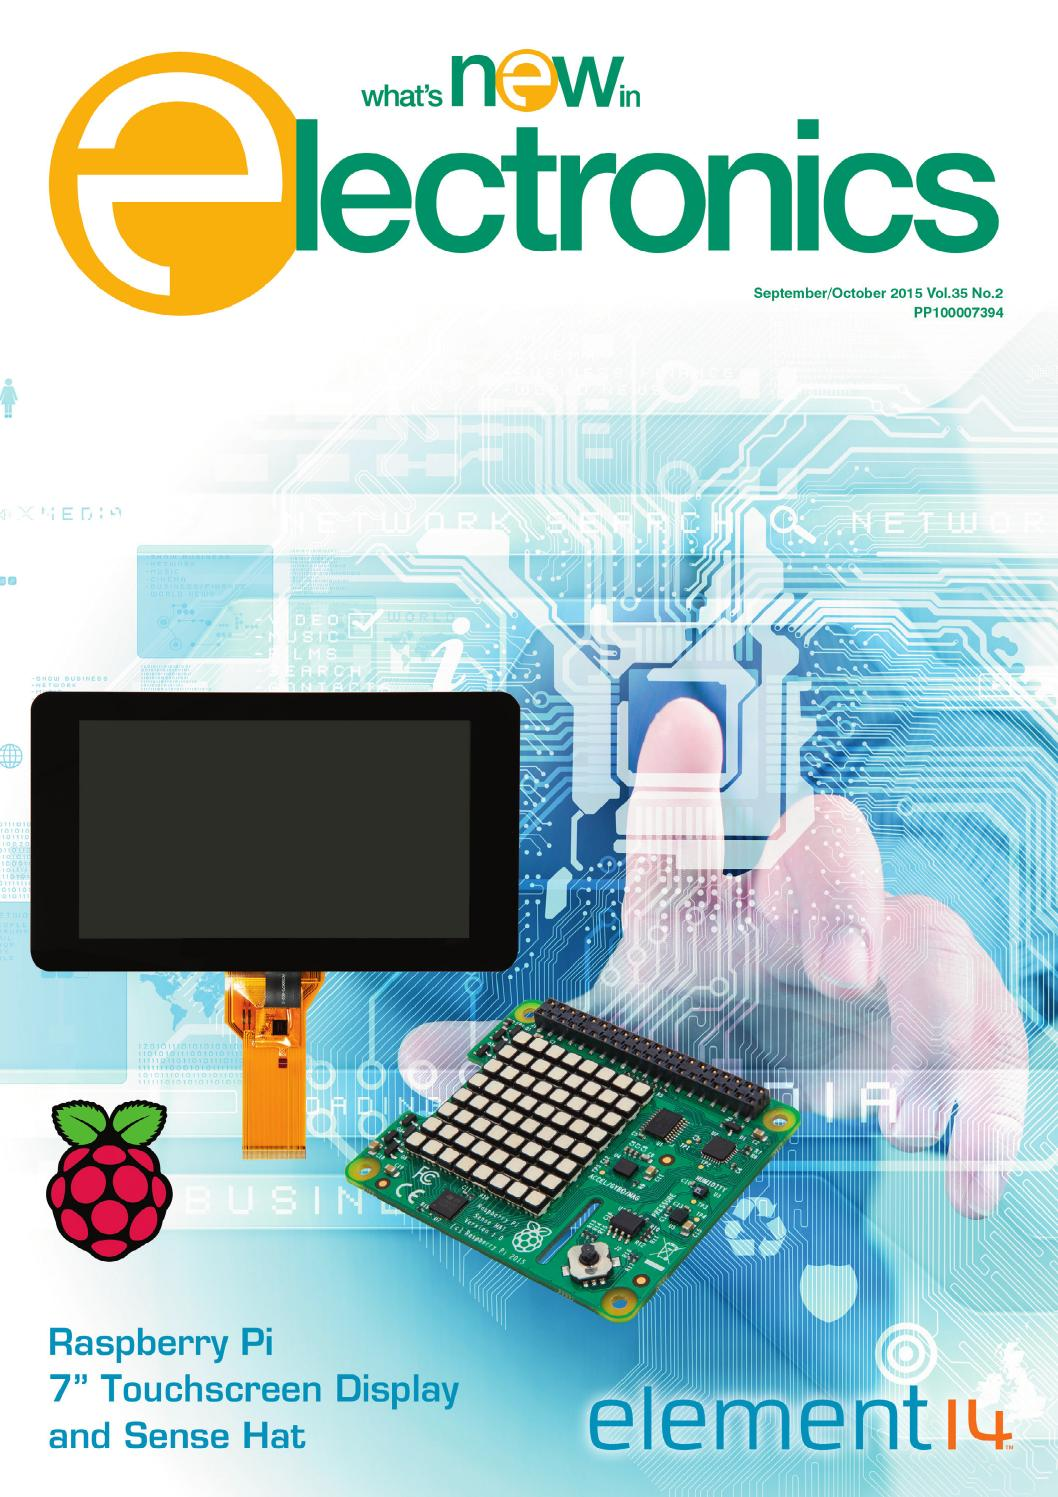 Whats New In Electronics Sep Oct 2015 By Westwick Farrow Media Issuu Arduino Projects Digital Voice Recorder Part 2 Apc